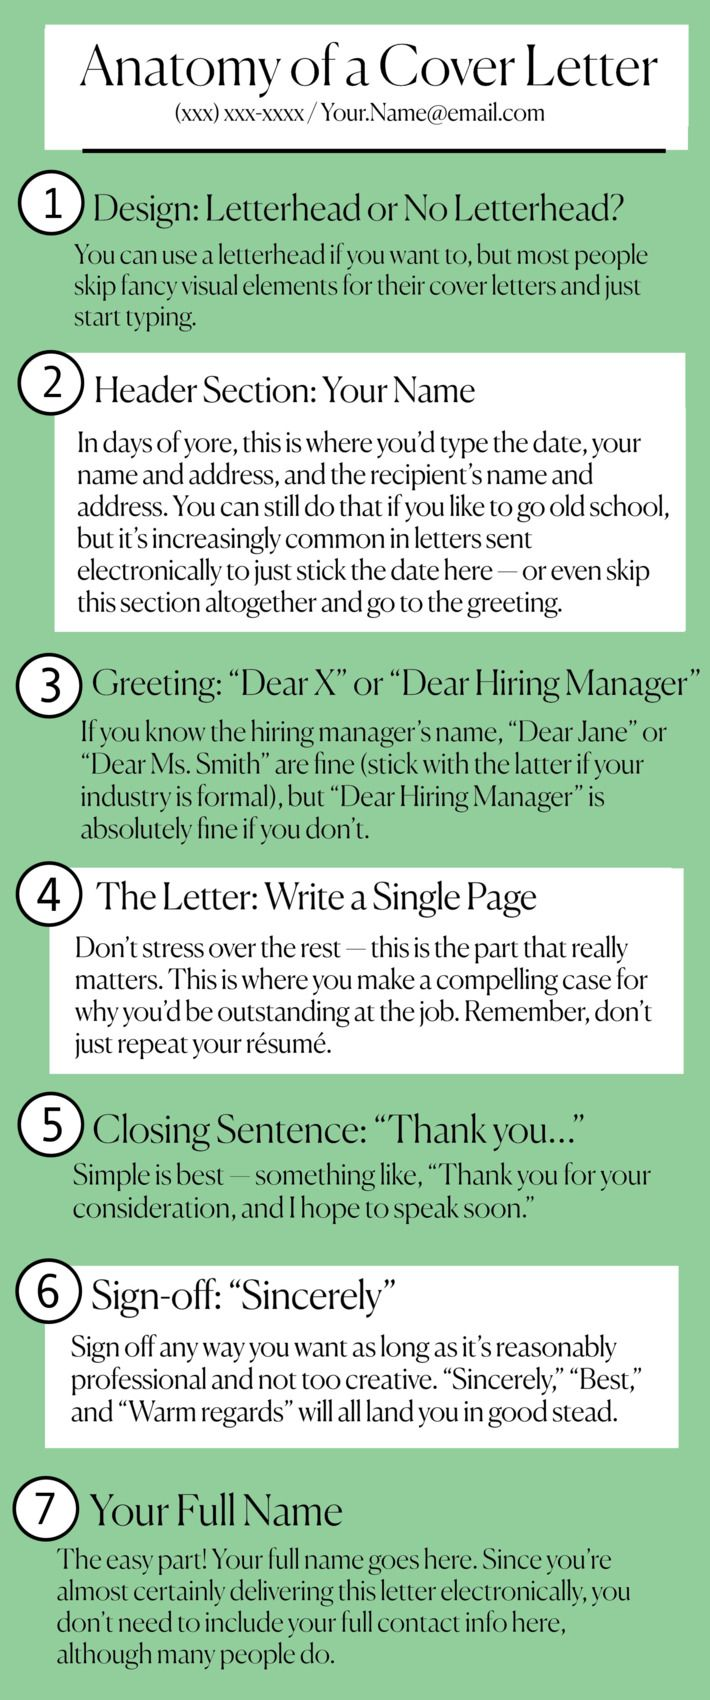 How To Write A Cover Letter That Will Get You A Job Job Cover